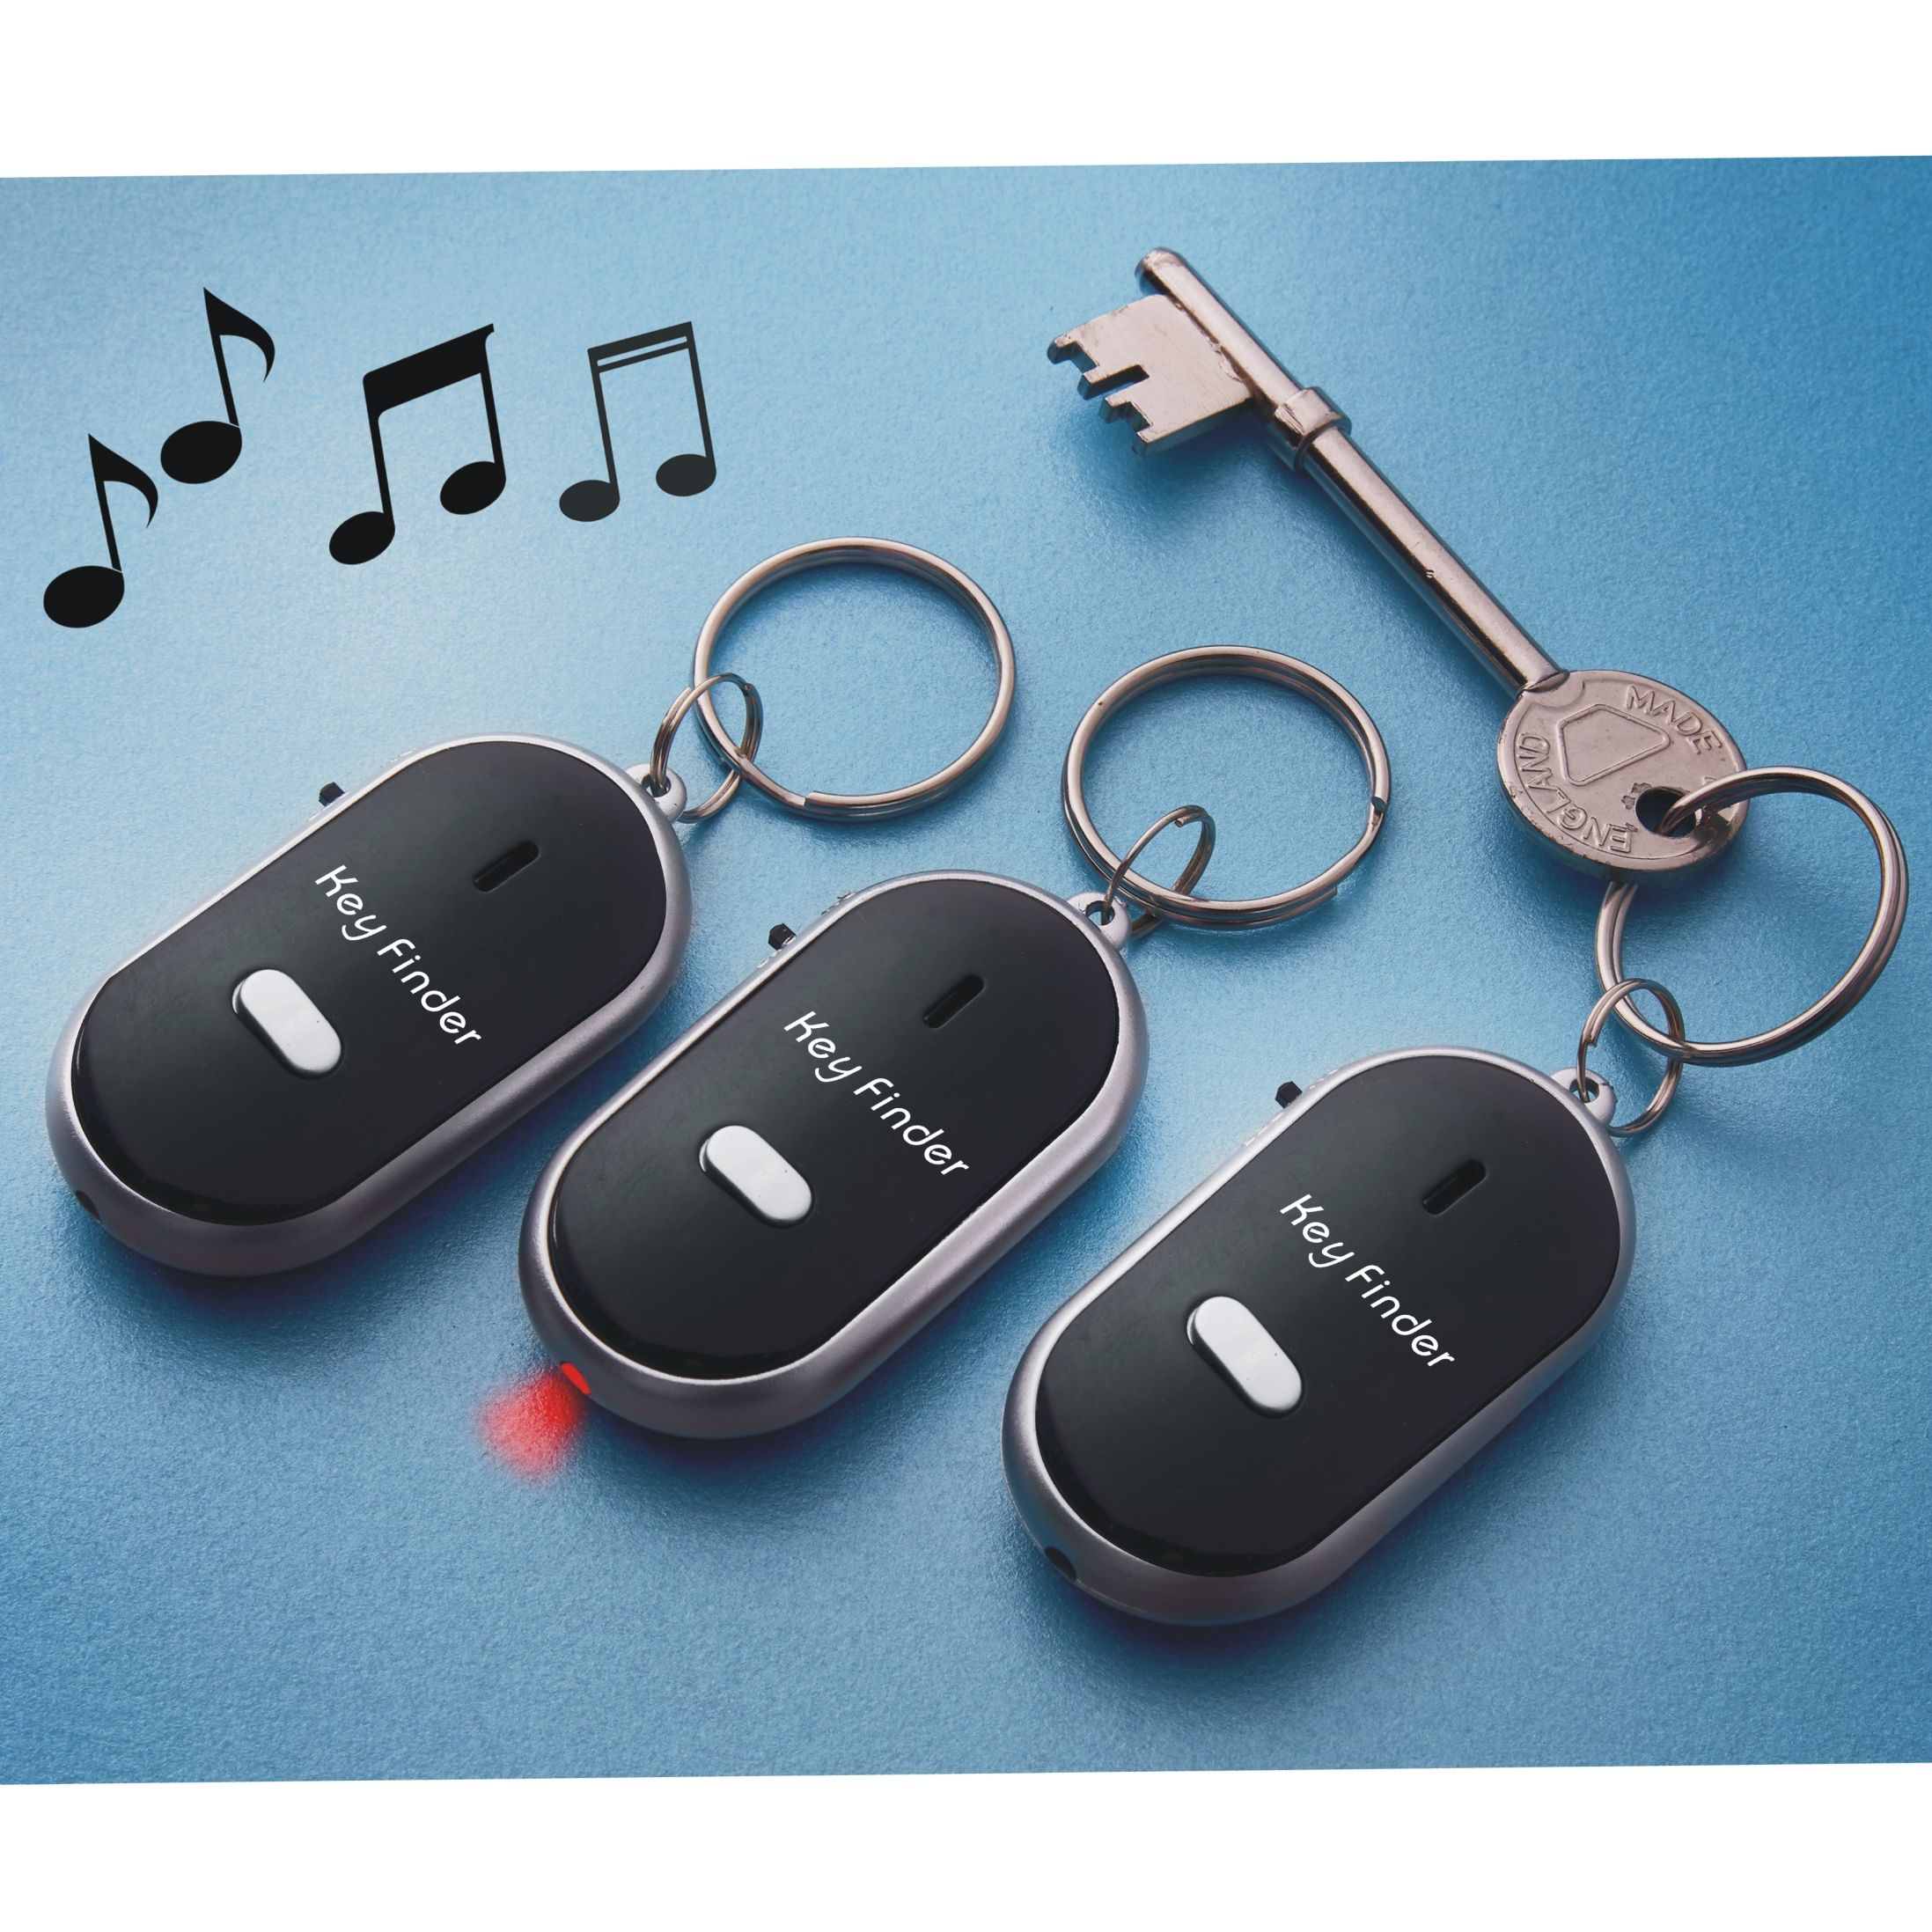 Set of 3 Whistling Key Finder With LED Light. Anti-Lost Device for Phone, Keys, Luggage, Wallets etc.